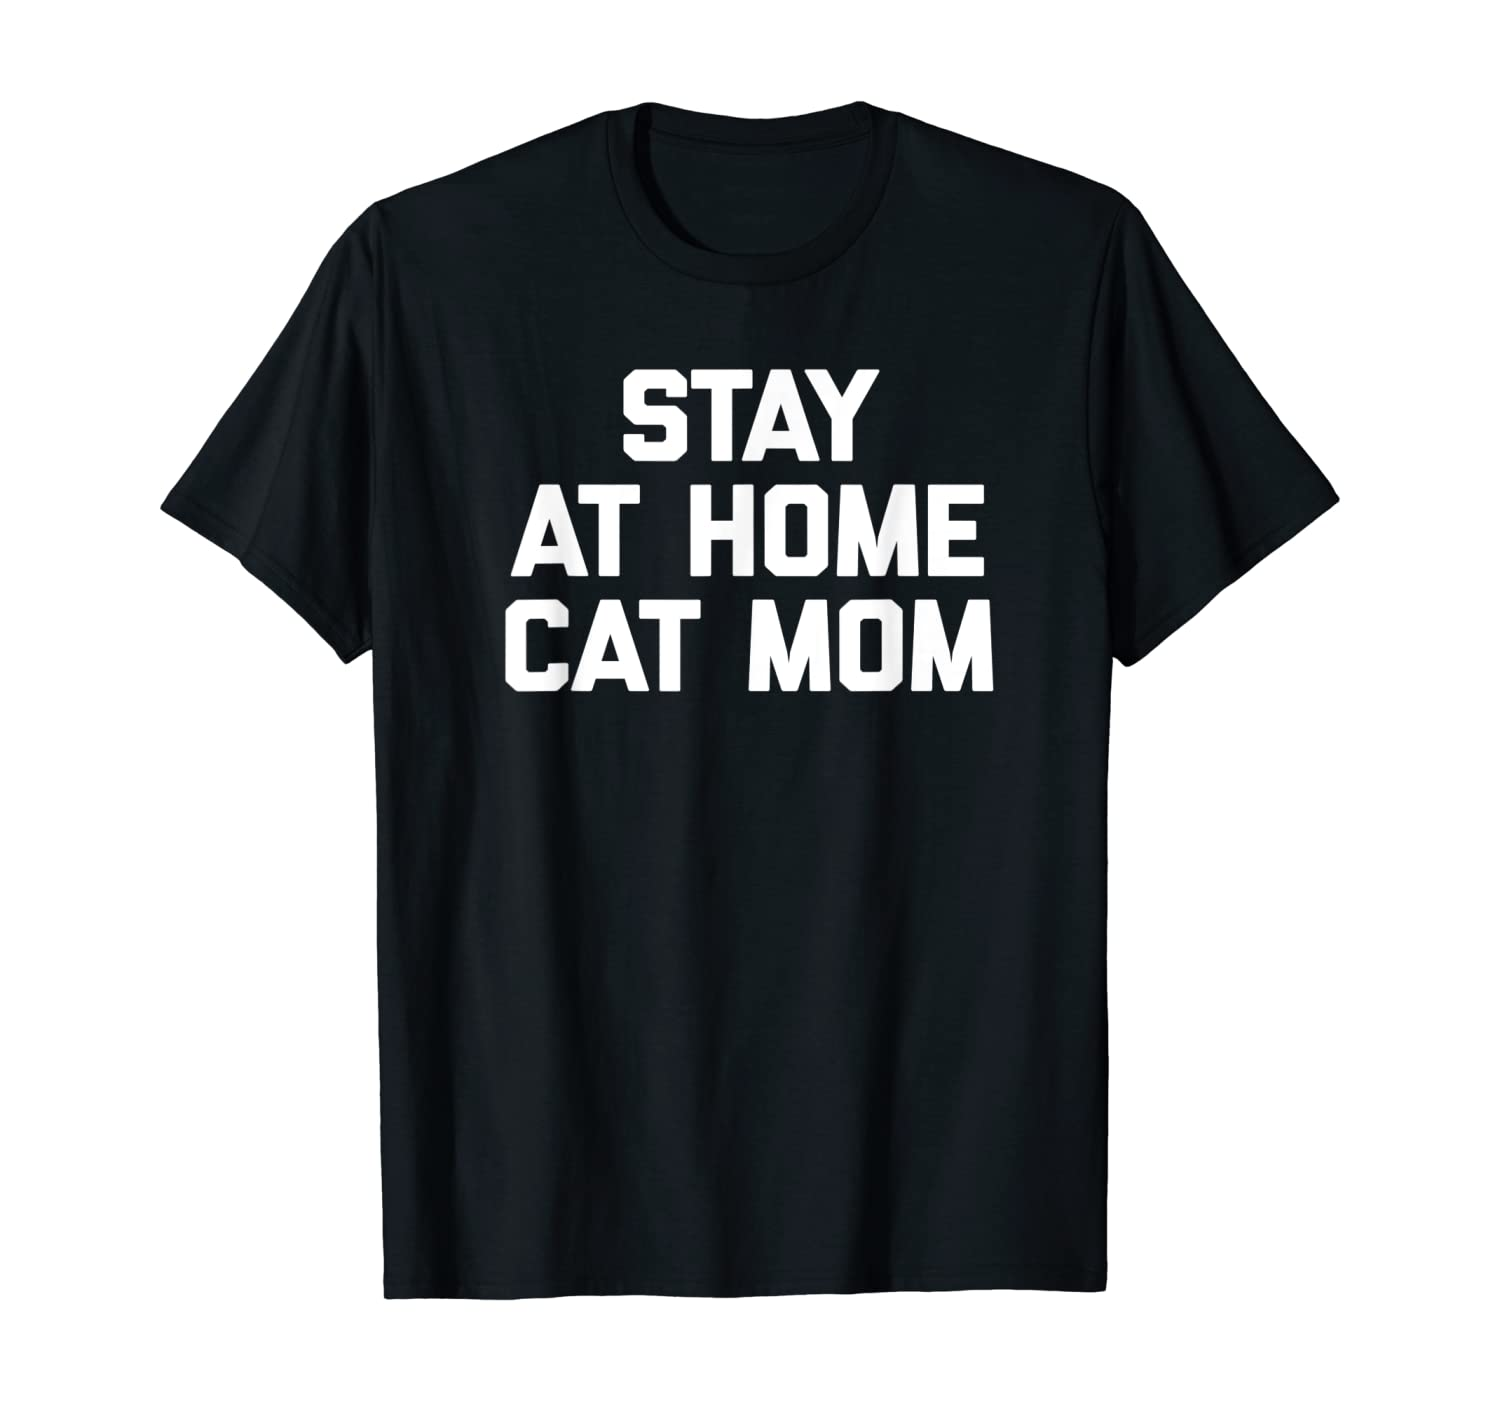 Stay At Home Cat Mom T-Shirt funny saying kitty cats novelty